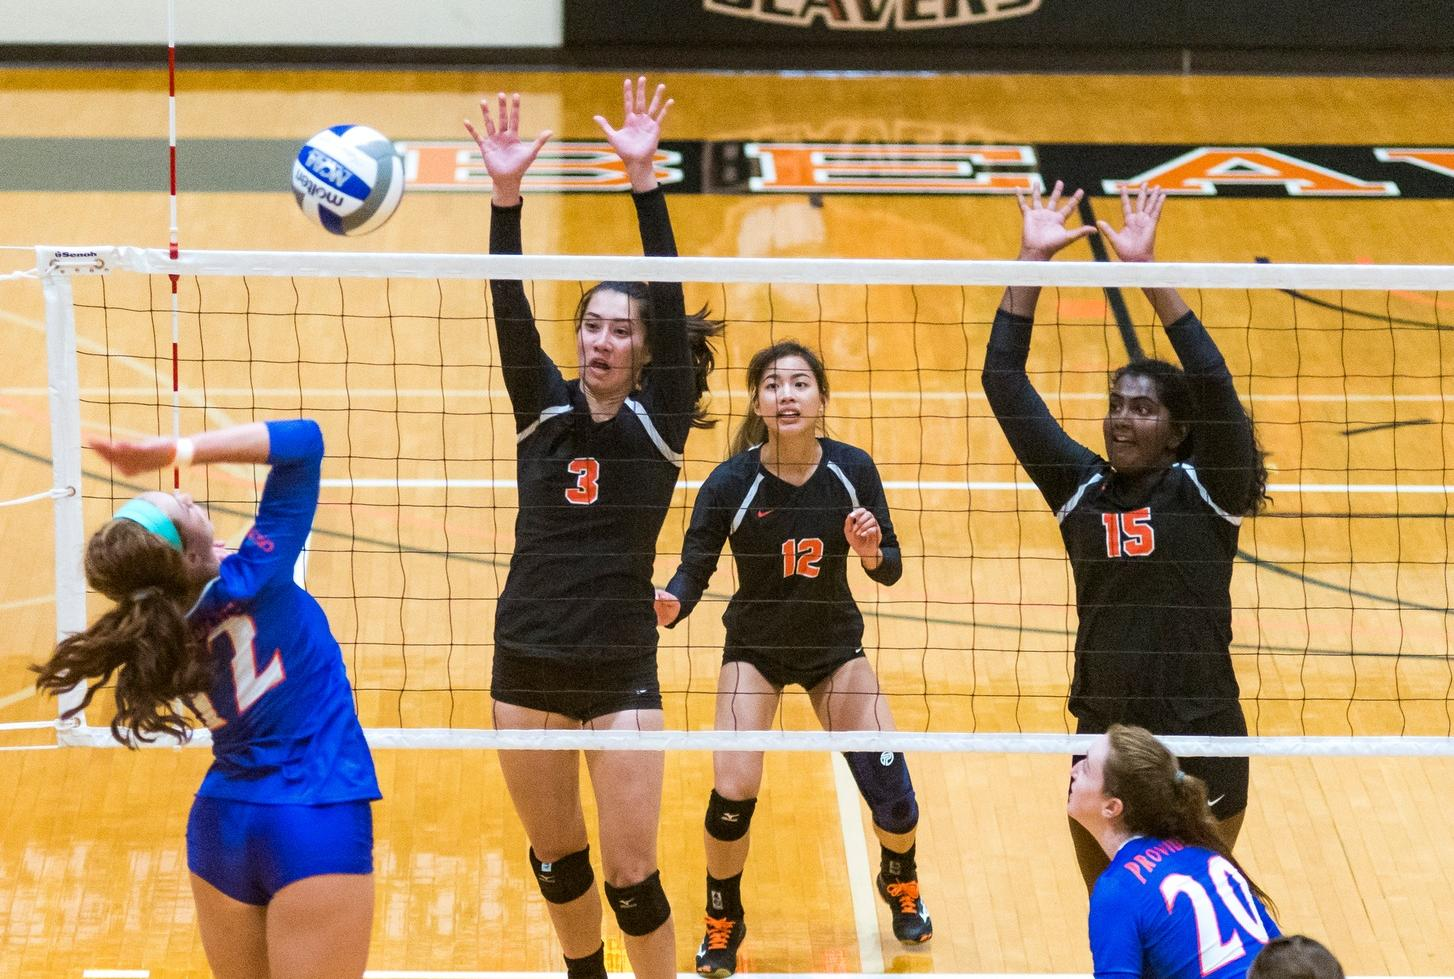 Vetrivel, Lauinger Lead Caltech Attack at Life Pacific